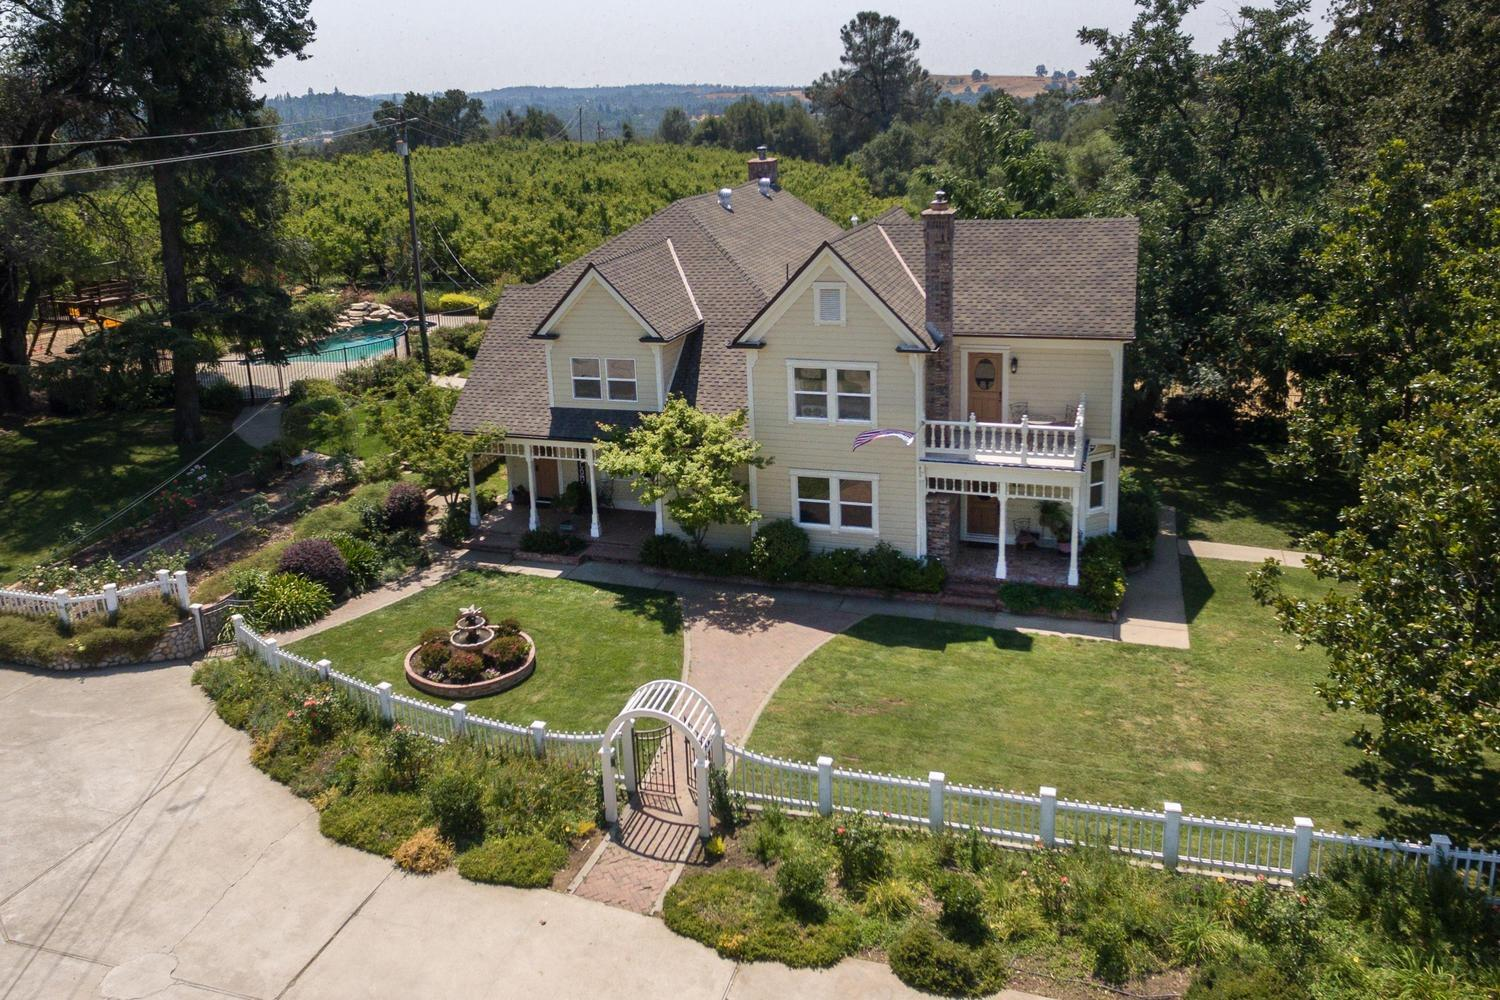 Persimmon Homes Share Price >> 1141 Persimmon Ln, Placerville, CA — MLS# 18003515 — ZipRealty